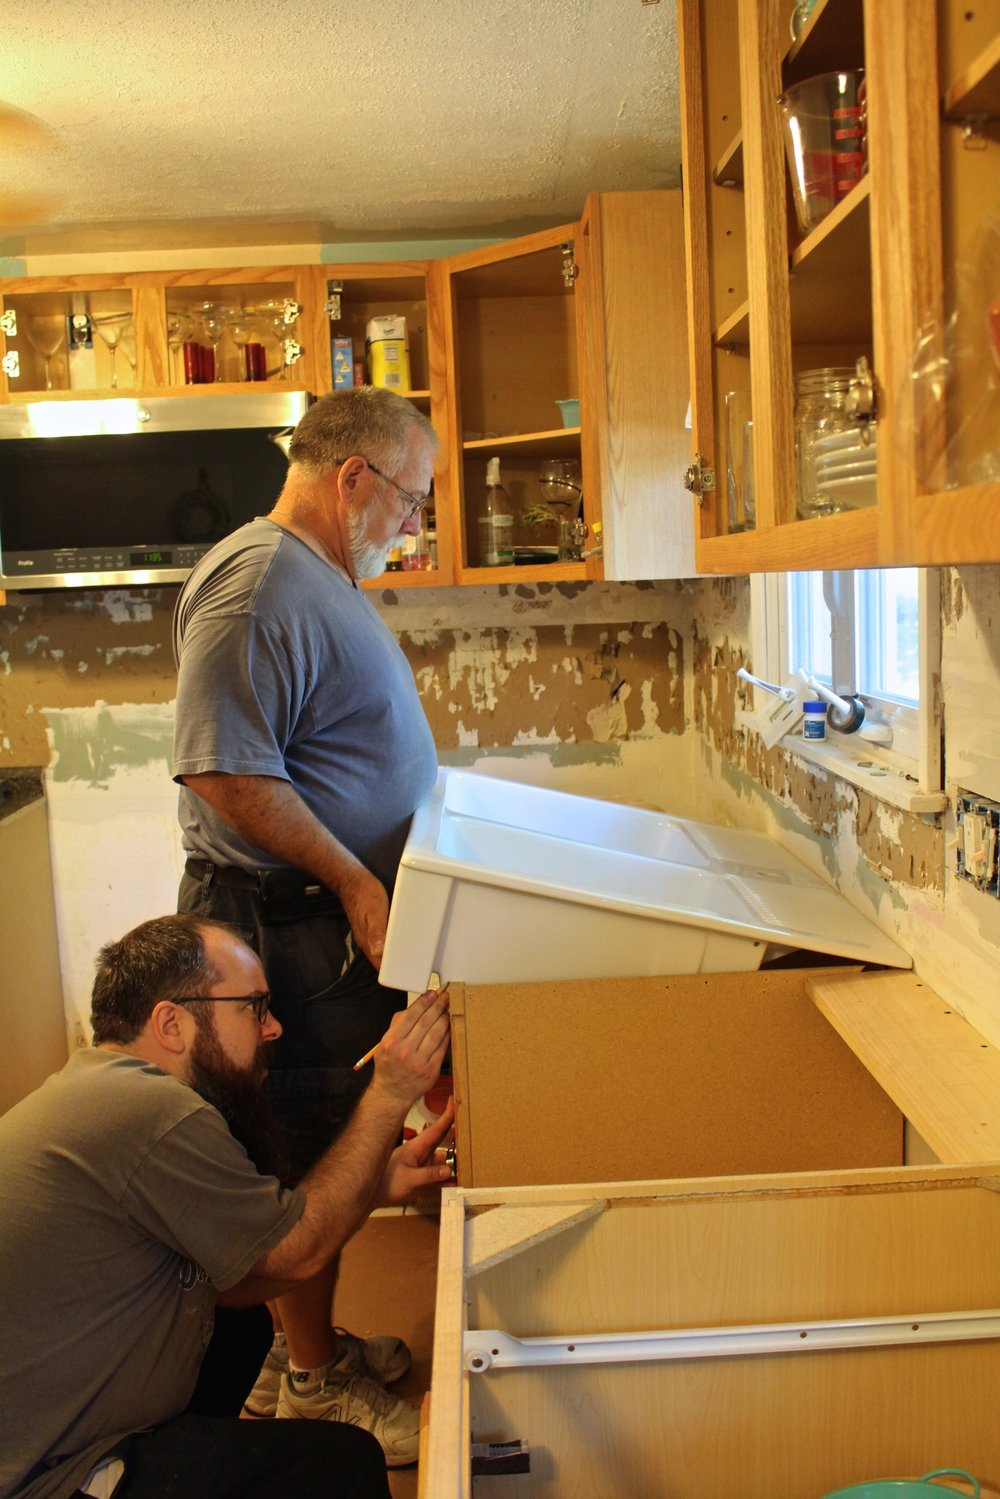 installing the ikea farmhouse sink